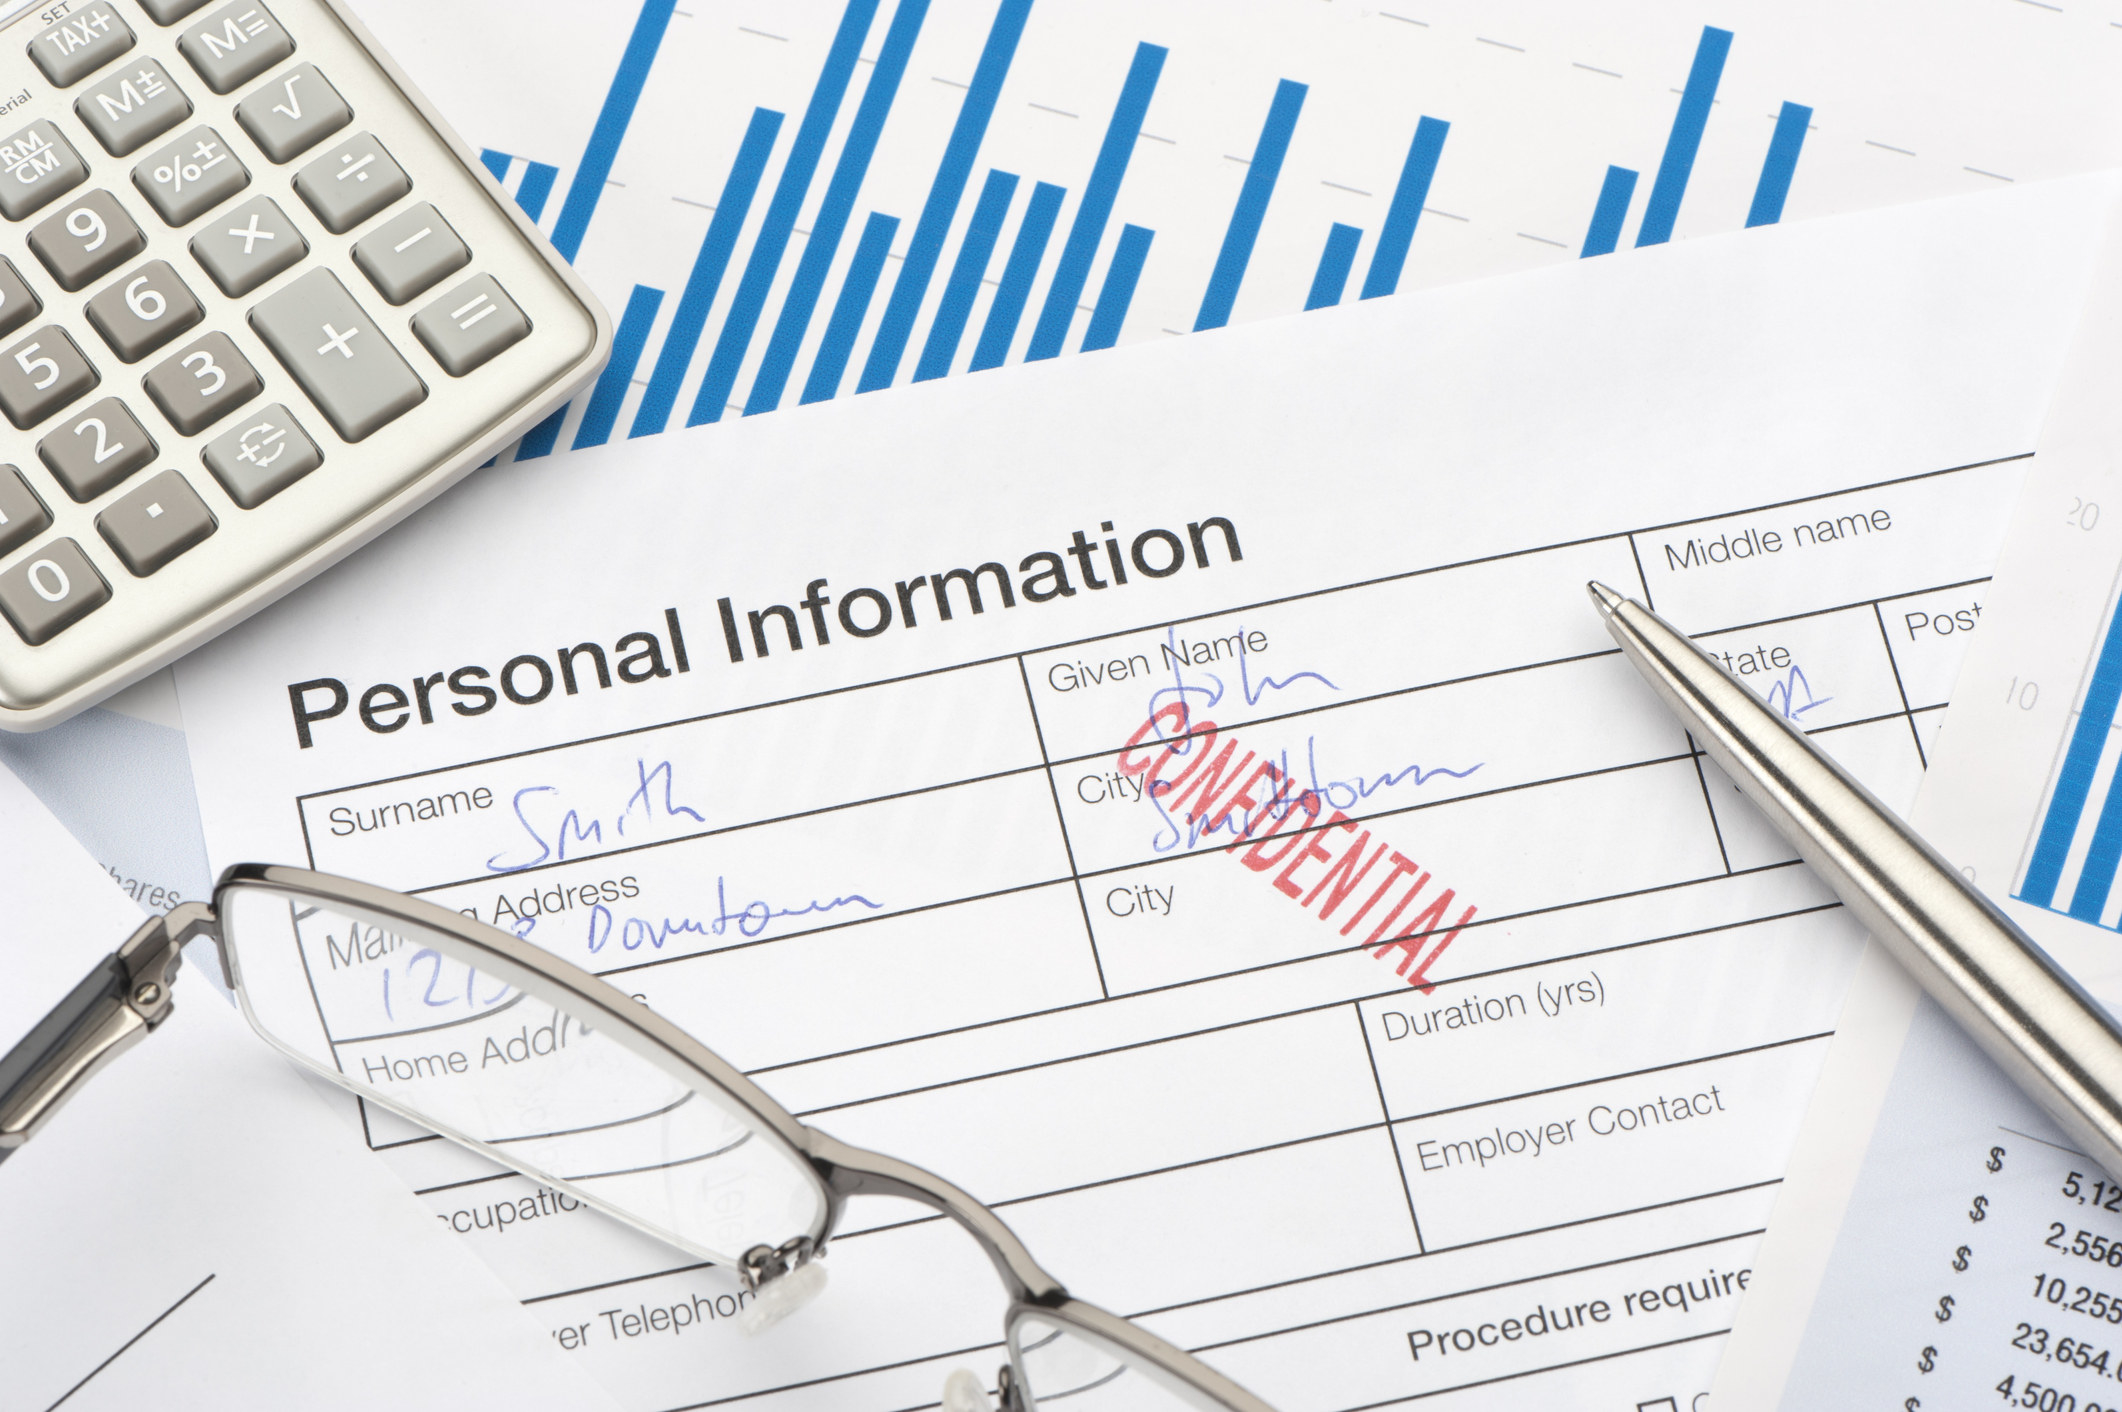 Personal information form stamped confidential